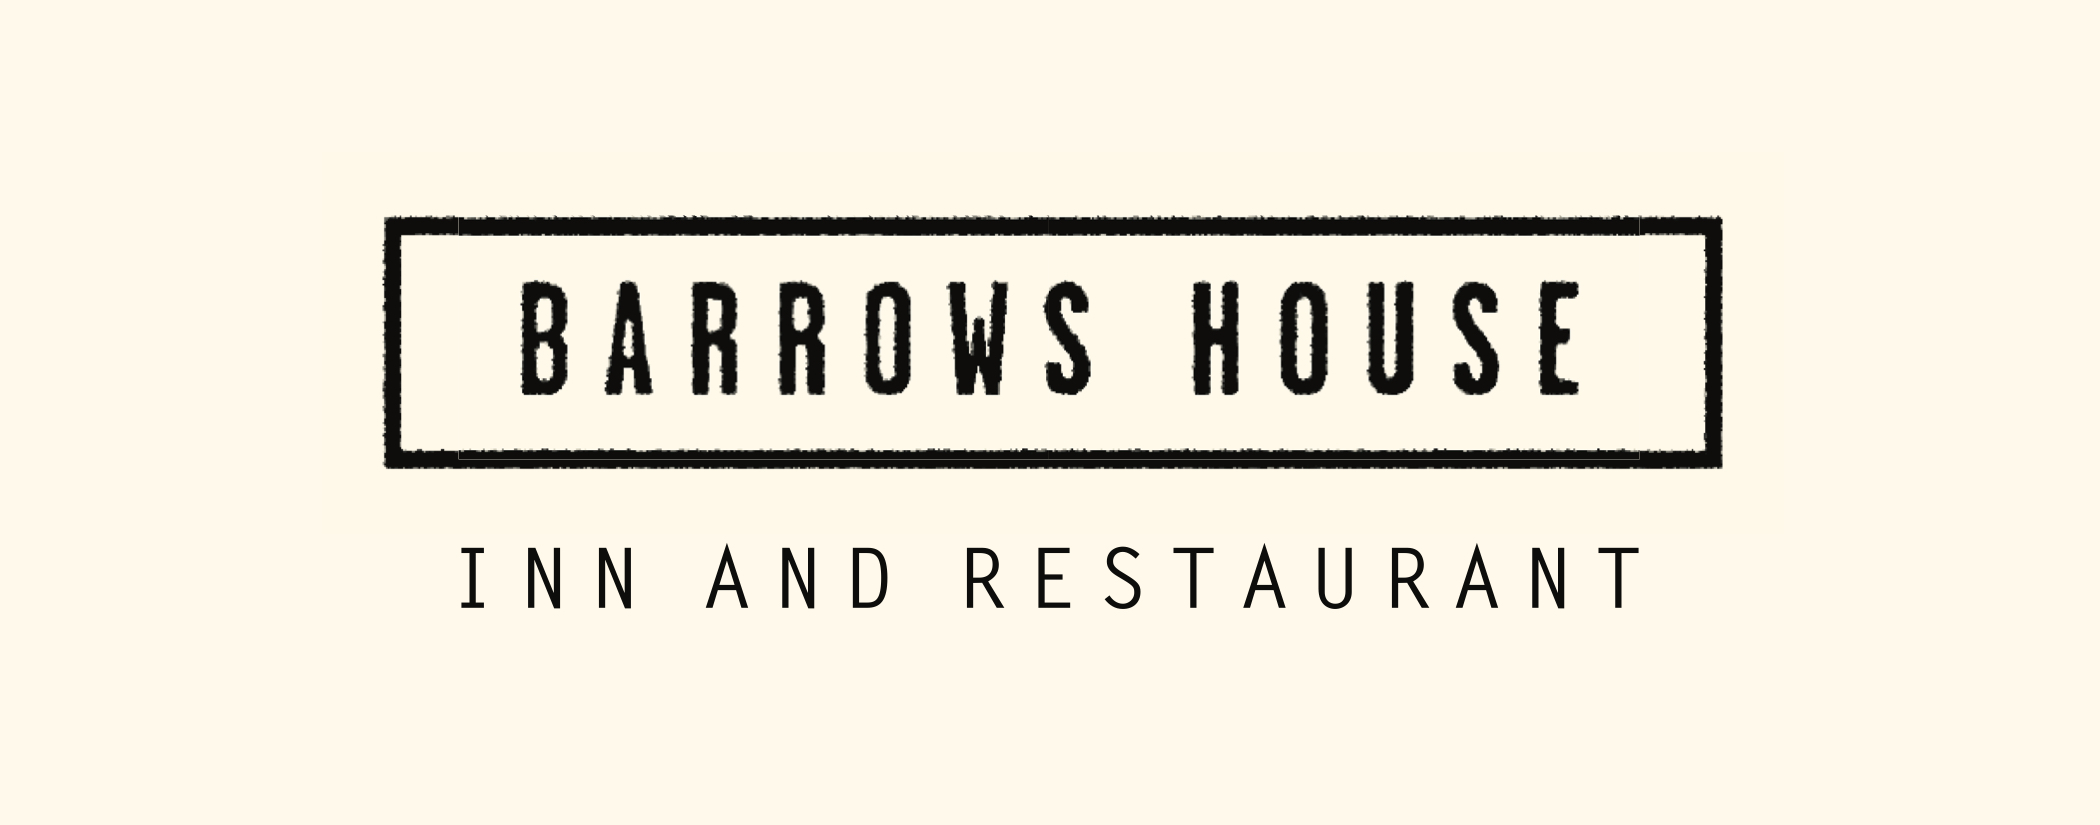 Barrows House New Logo.jpg